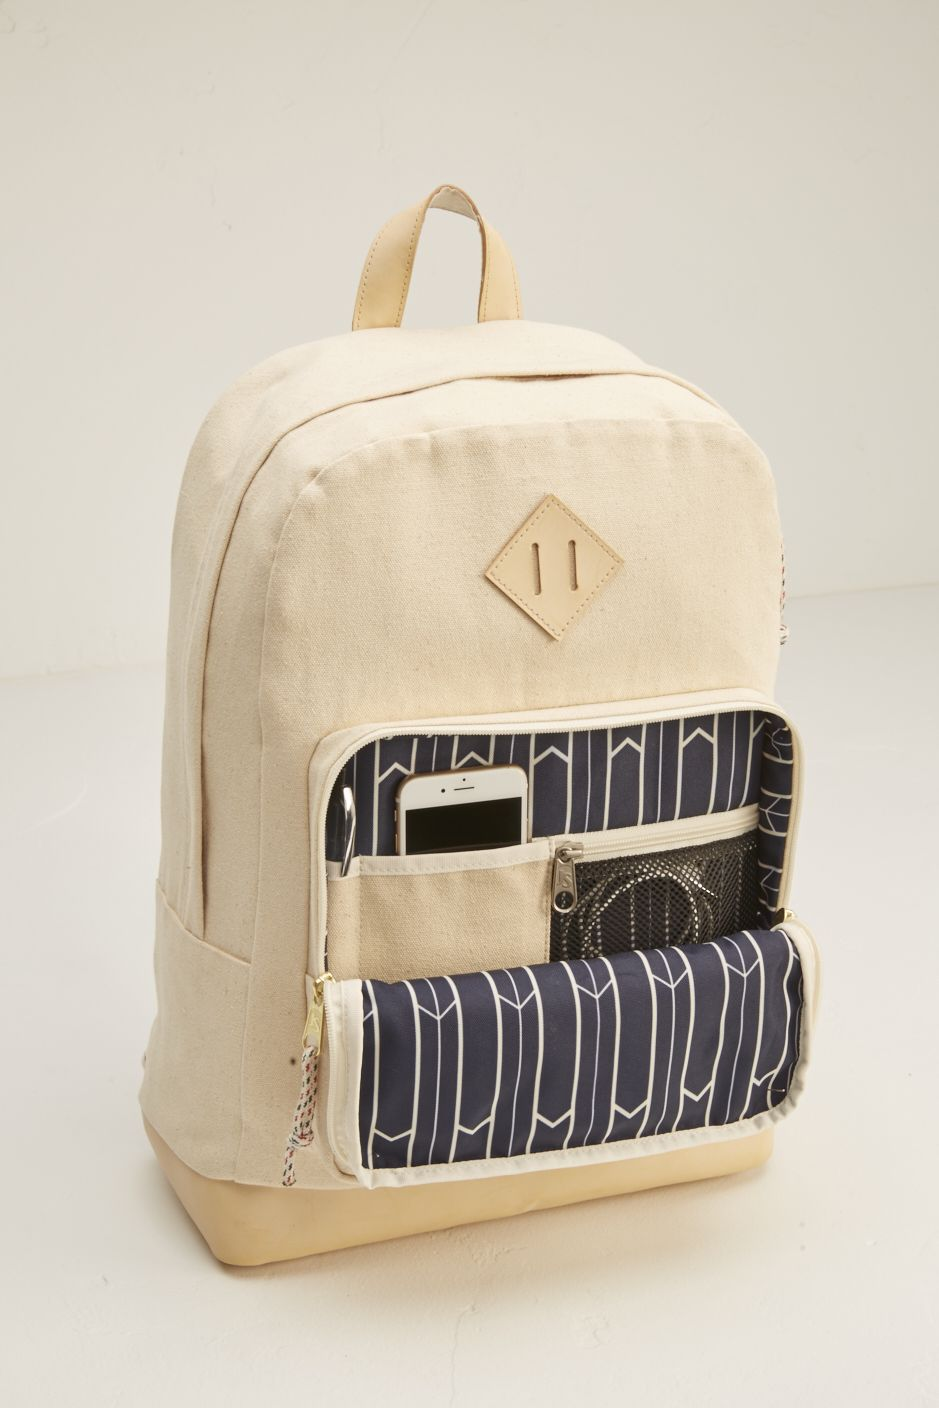 JanSport Axiom natural canvas  backpack from the new  WaywardCollection.  Legendary JanSport durability meets jetsetter style. The new Wayward  Collection is ... 92b1e3643d398